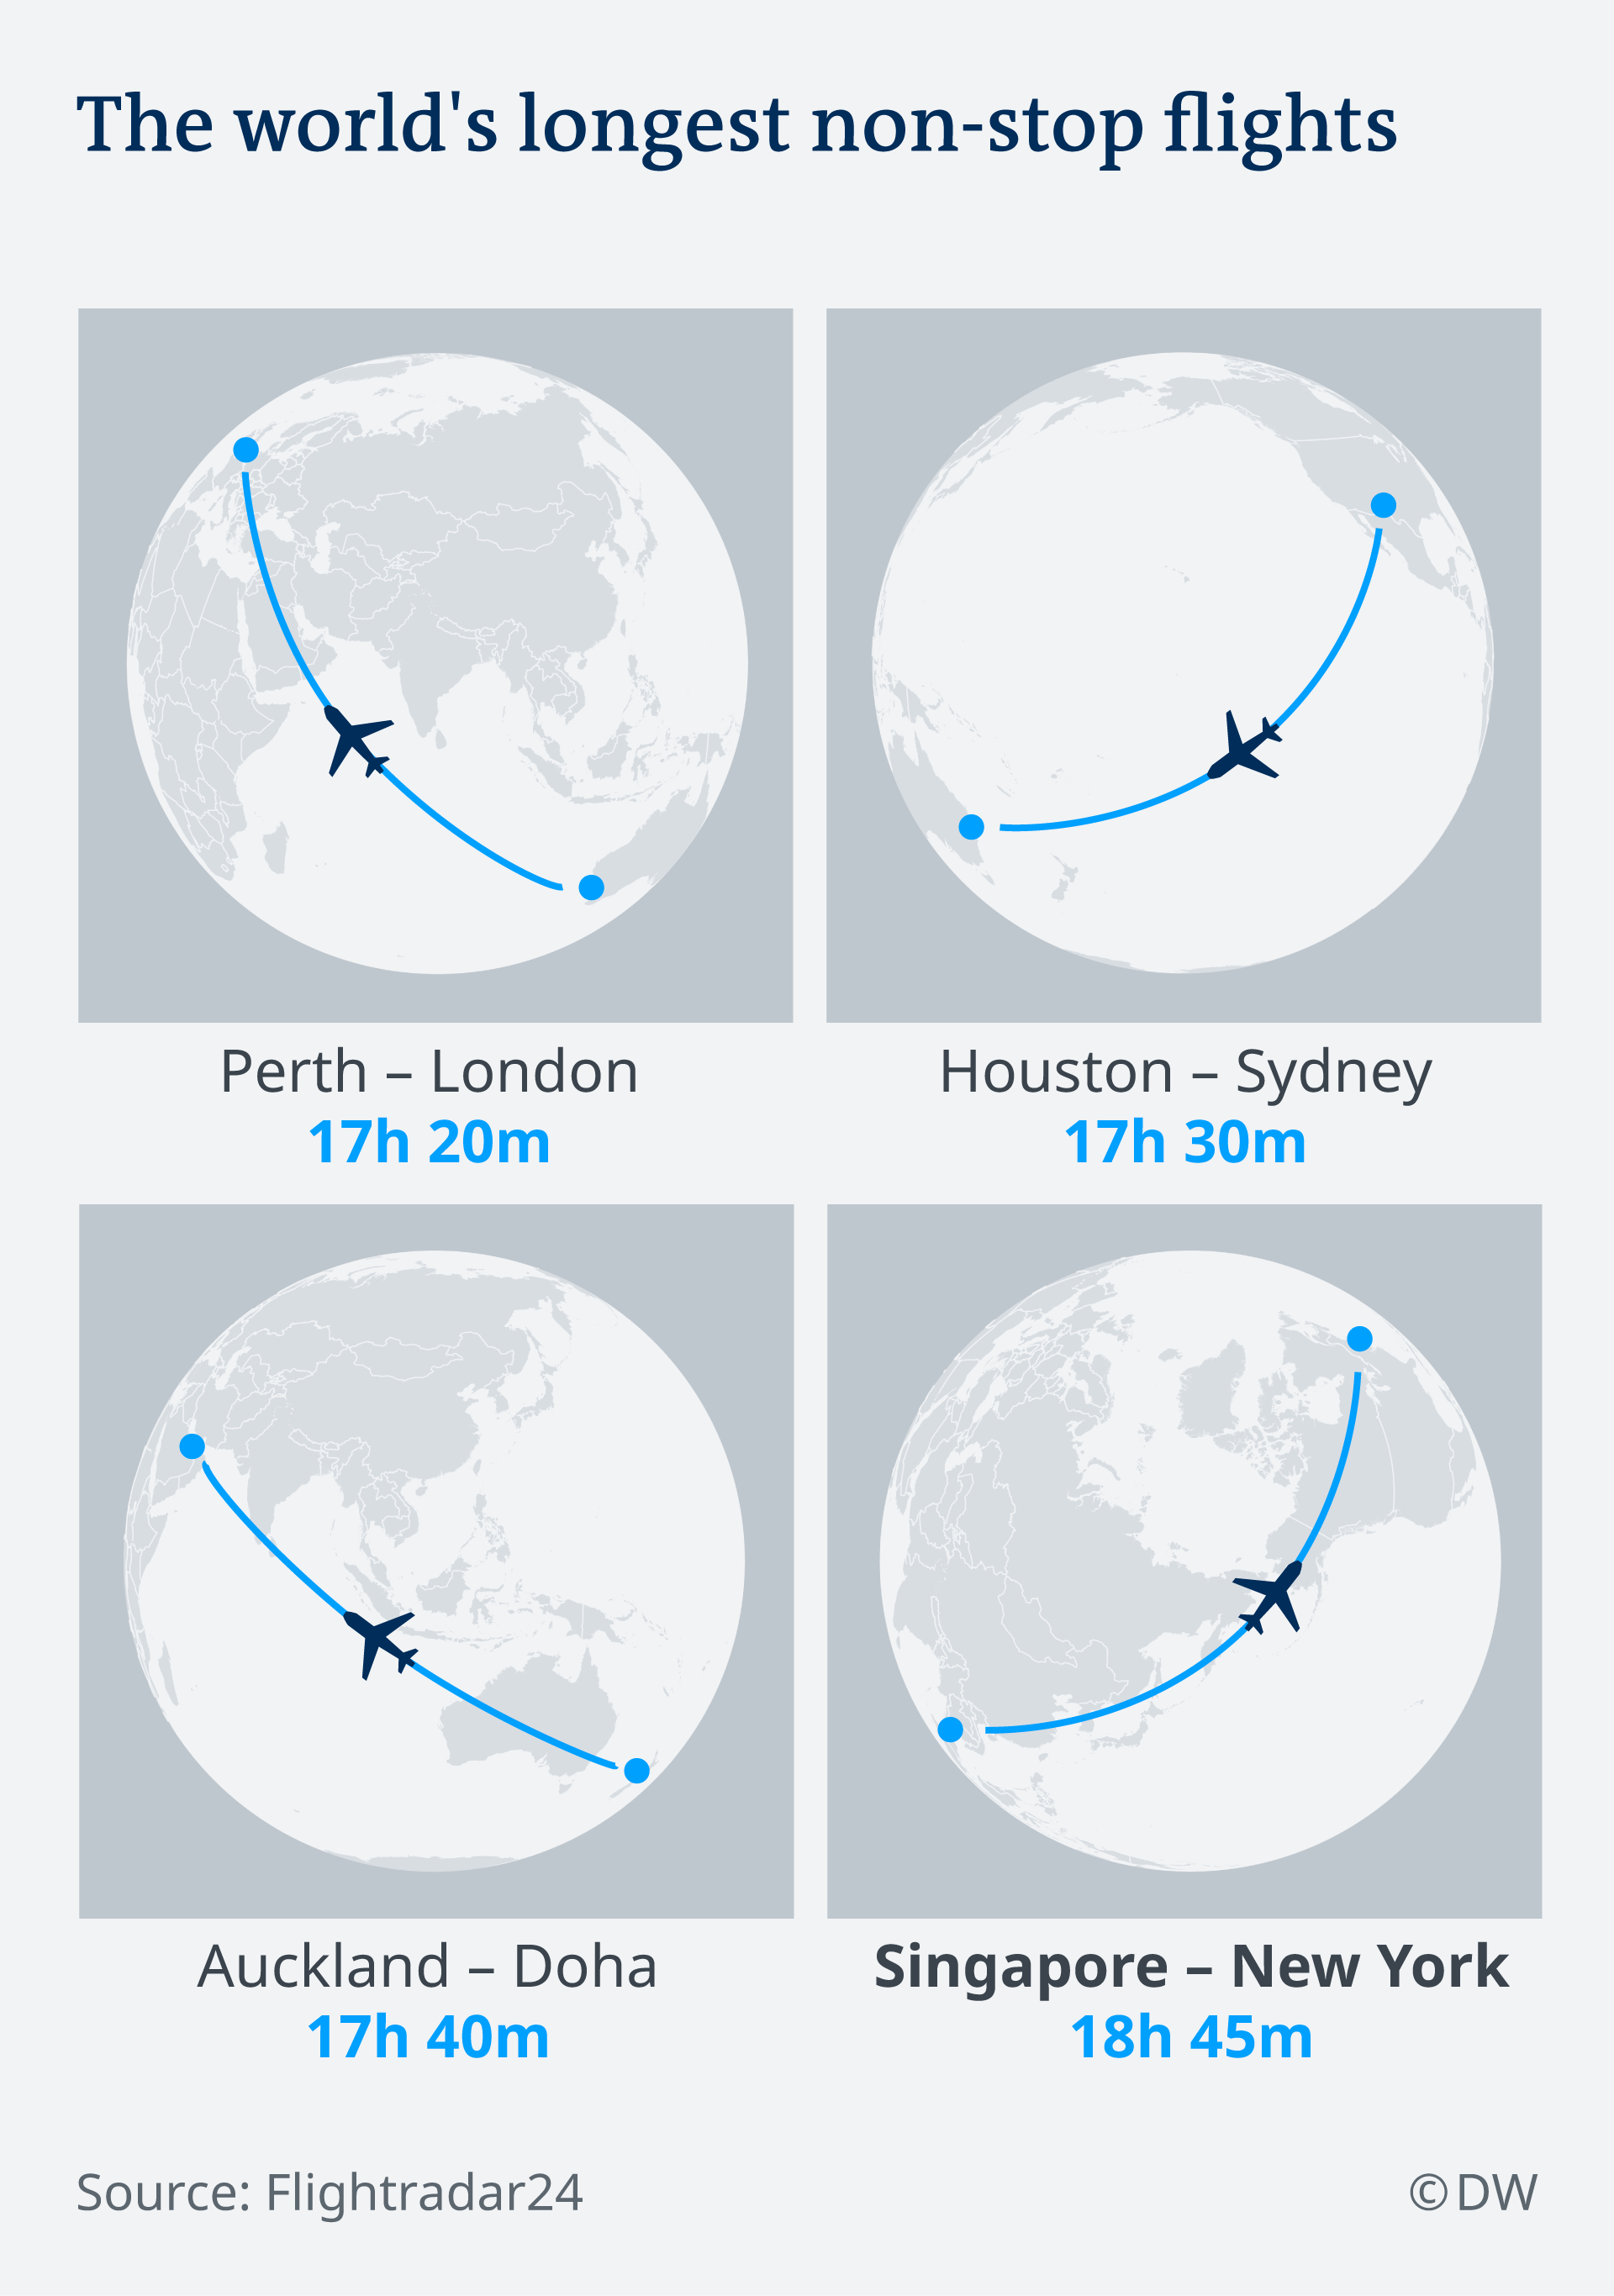 Non-stop madness: How long-haul flights affect your mind